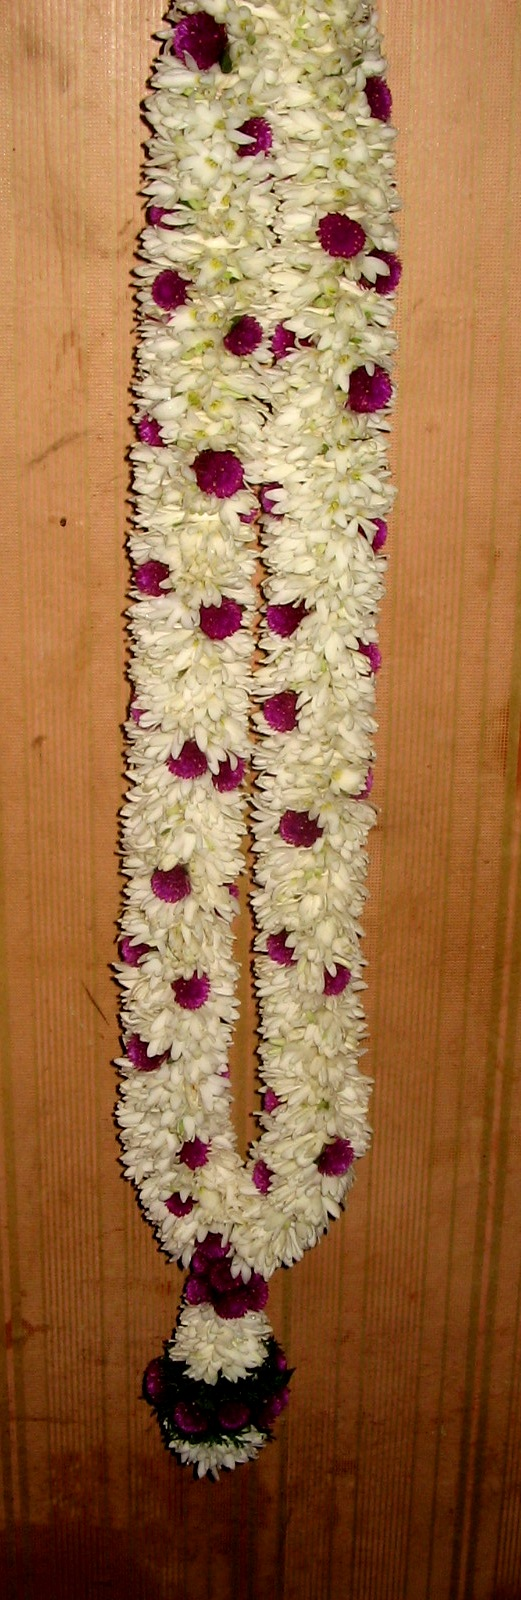 Image result for Wedding Garlands with Lily